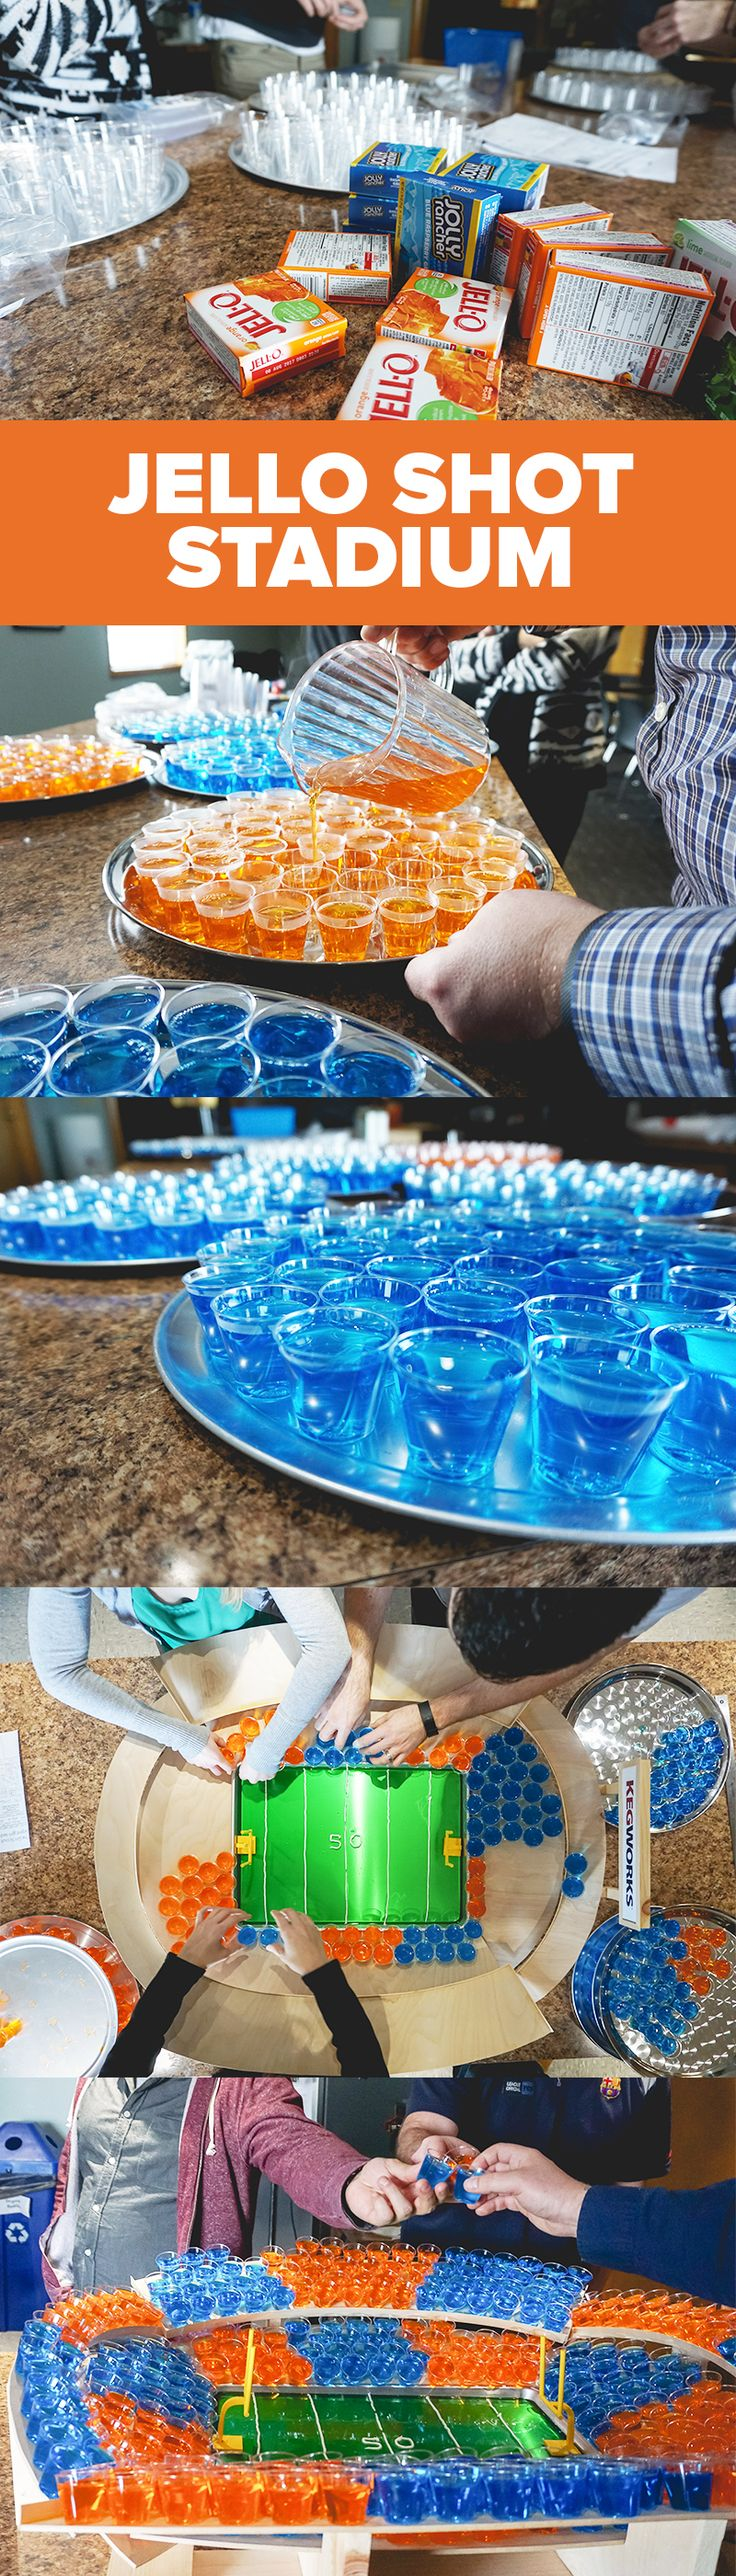 Snackstadiums are cool and all, but this football season, step up your tailgating game with a stadium made entirely of Jello shots in colors that correspond with the teams competing.